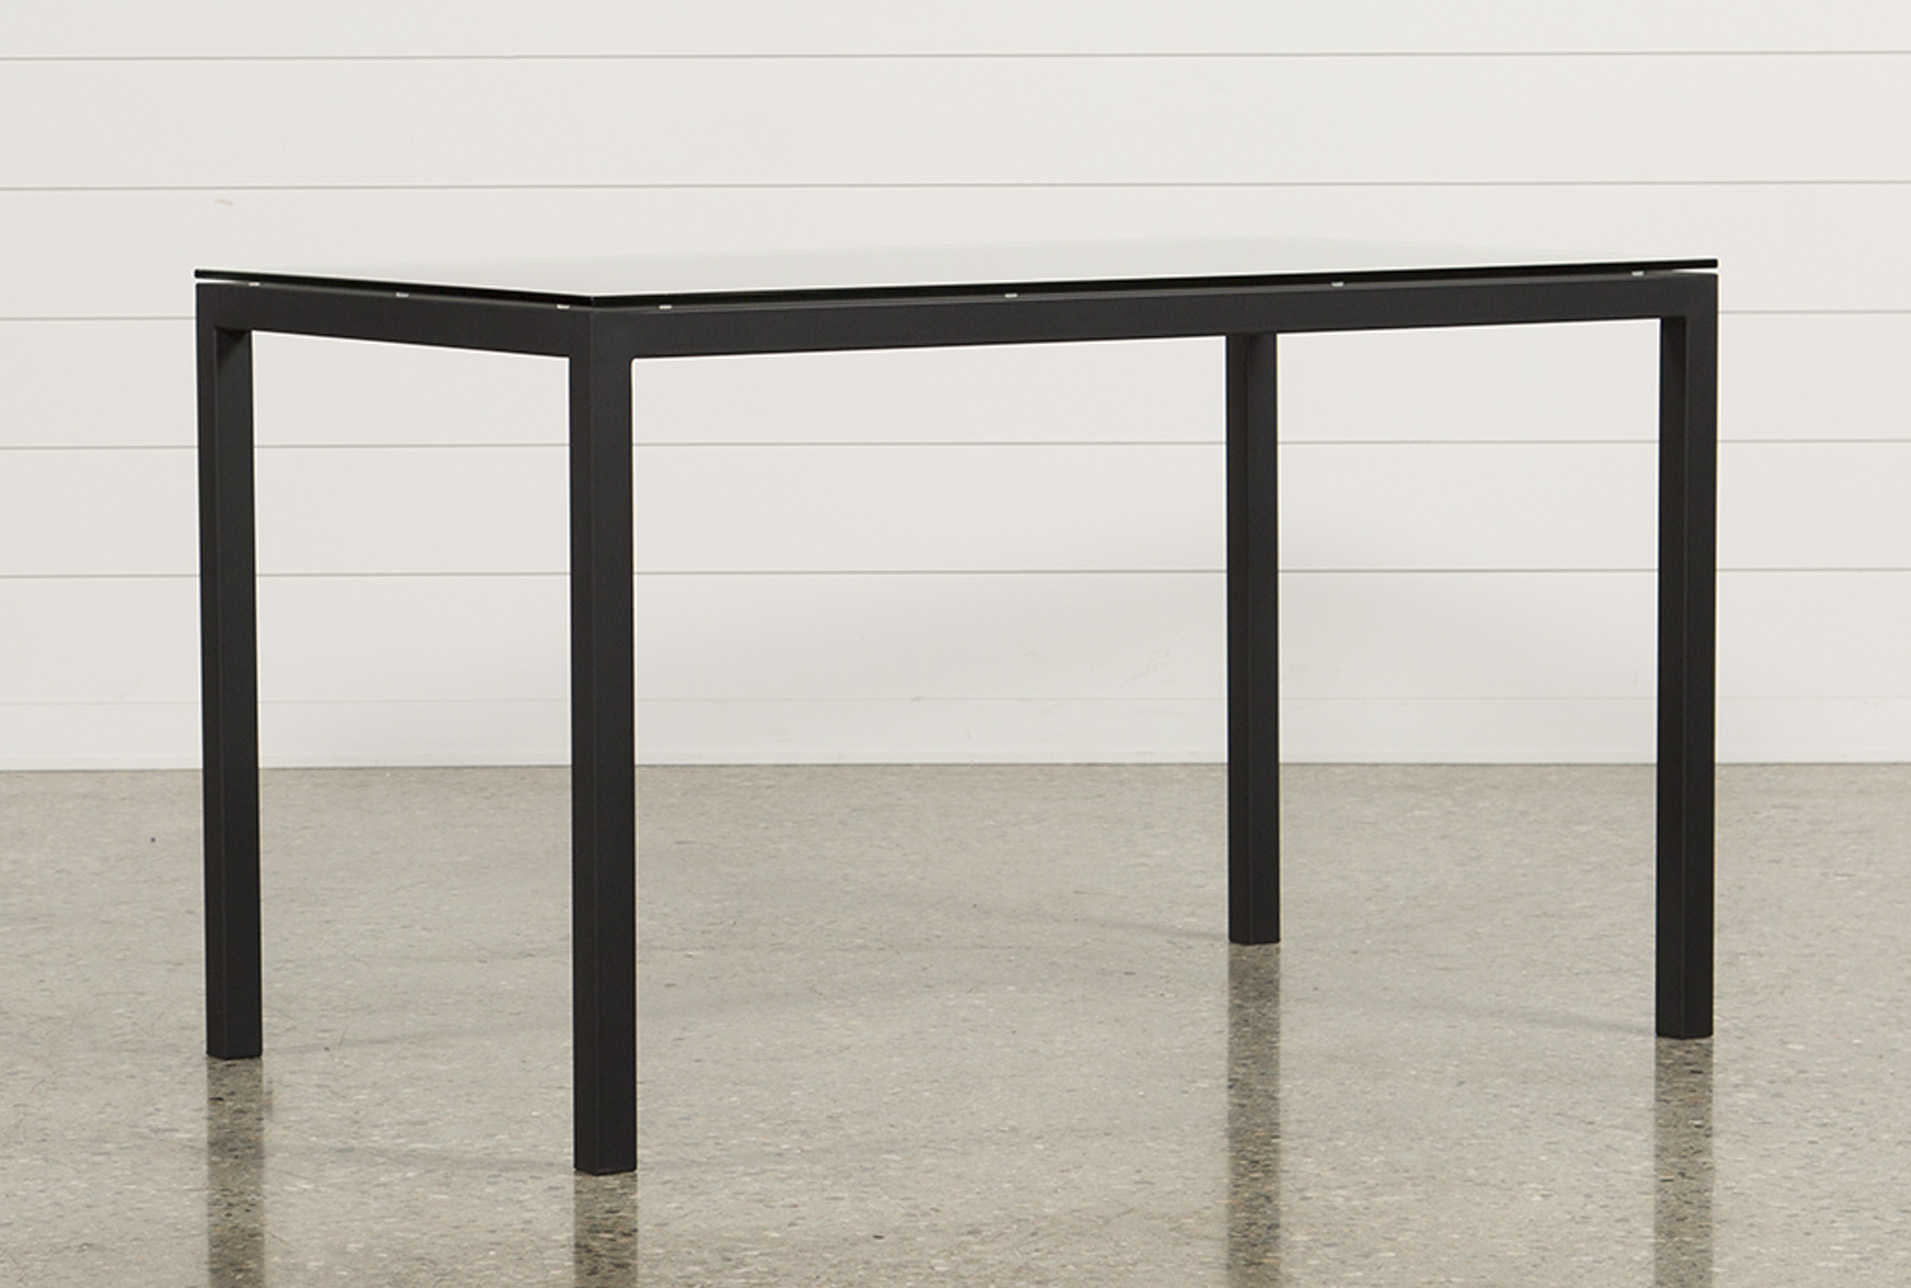 Ina Matte Black 60 Inch Counter Table W/Clear Glass (Qty: 1) Has Been  Successfully Added To Your Cart.